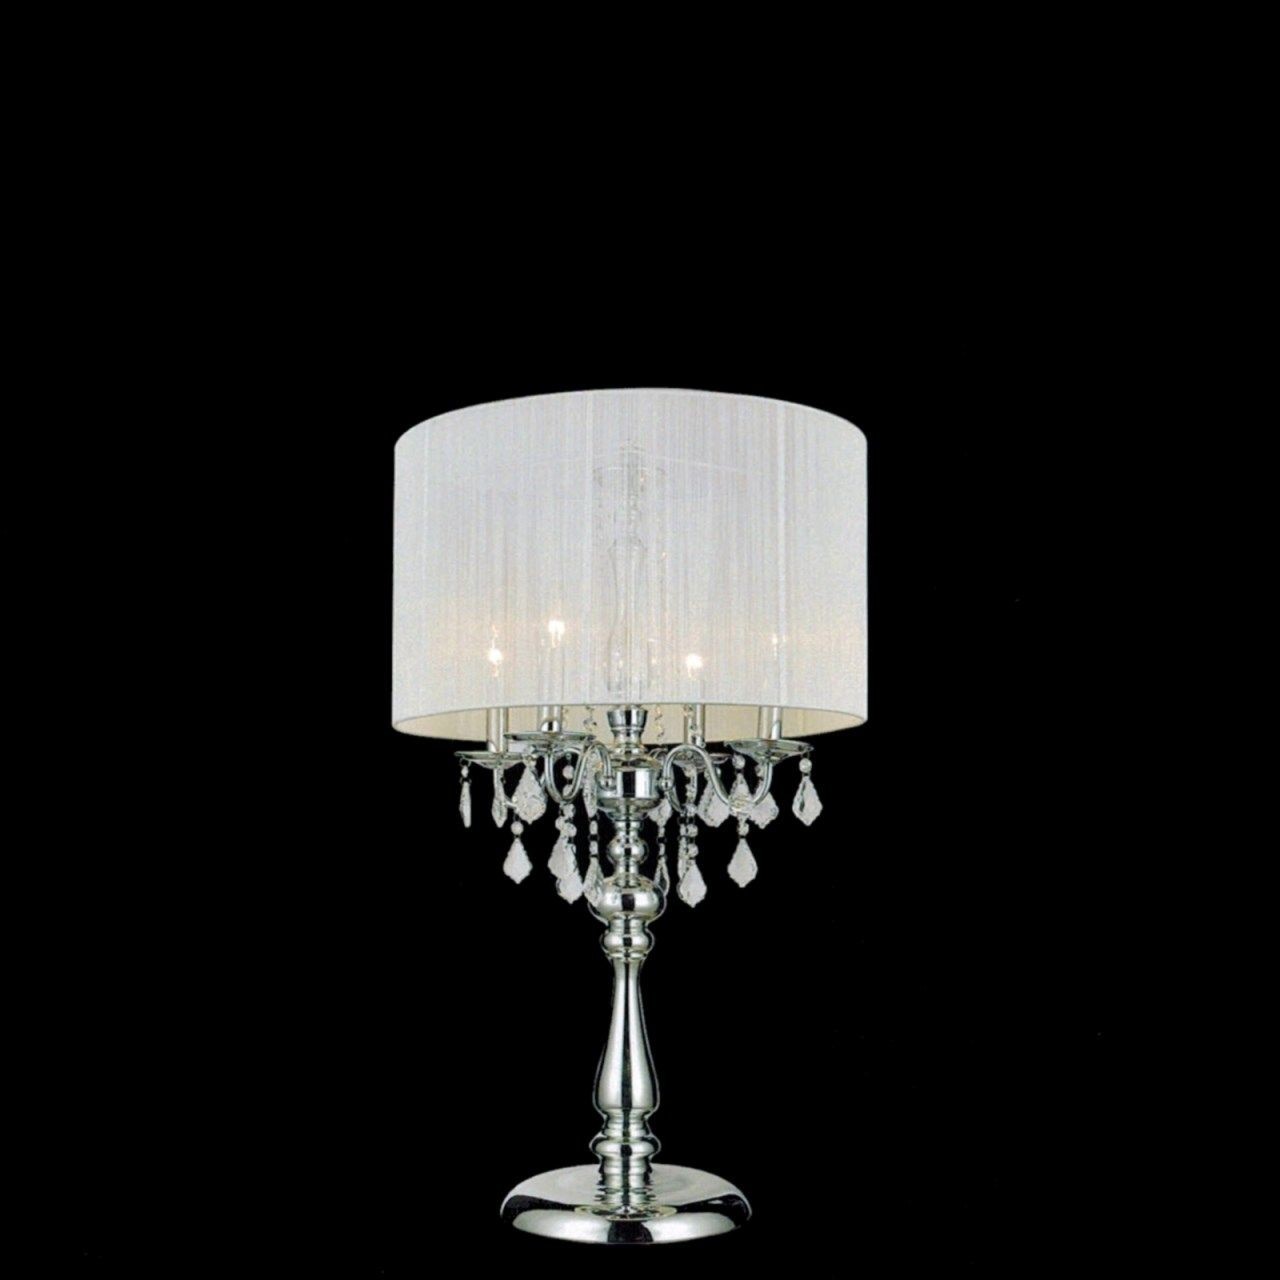 Black and white lamp shades for table lamps httpargharts small crystal table lamp shades by making your dining table setting different things and eye pleasing dining may be an enjoyable experience aloadofball Images